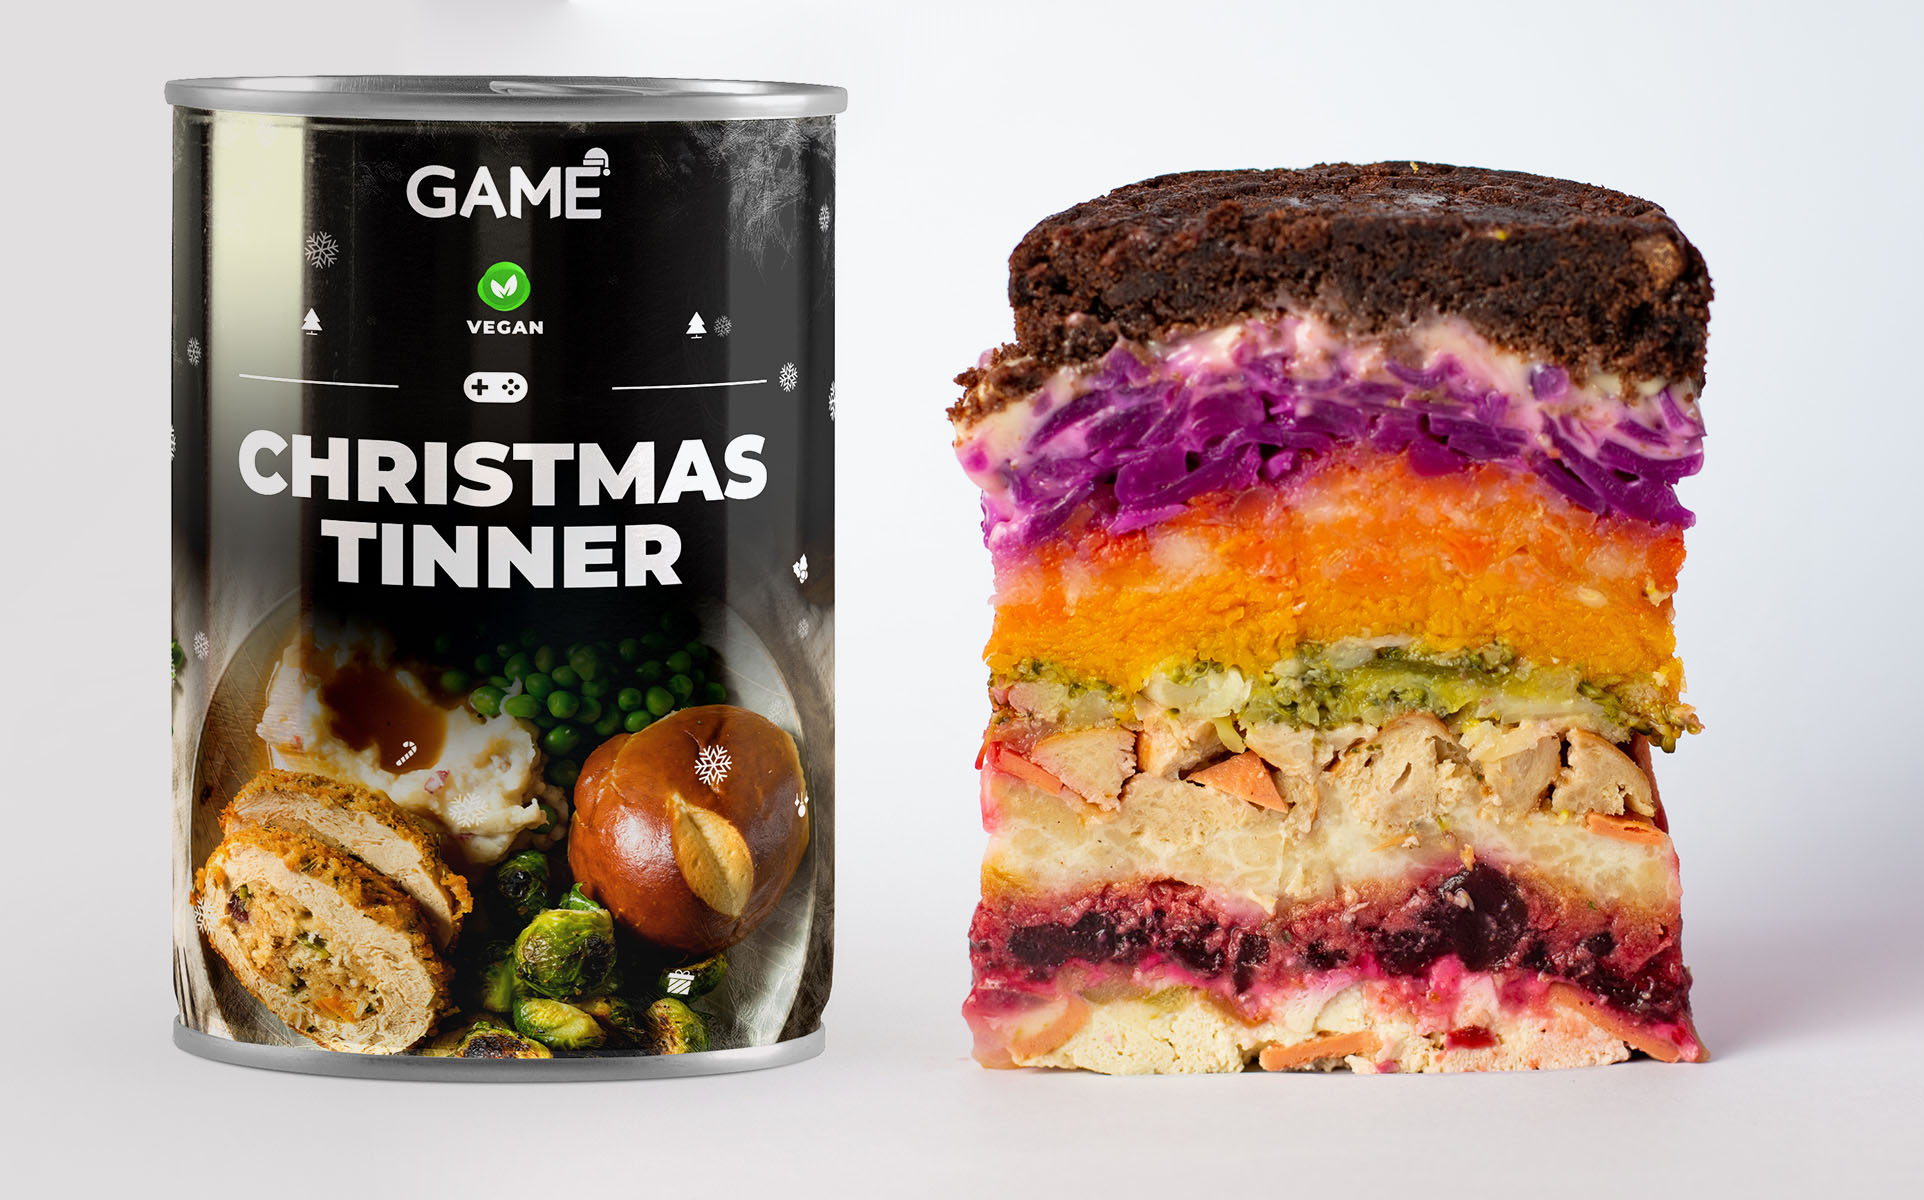 The Christmas Tinner is back but this time with vegan and vegetarian options